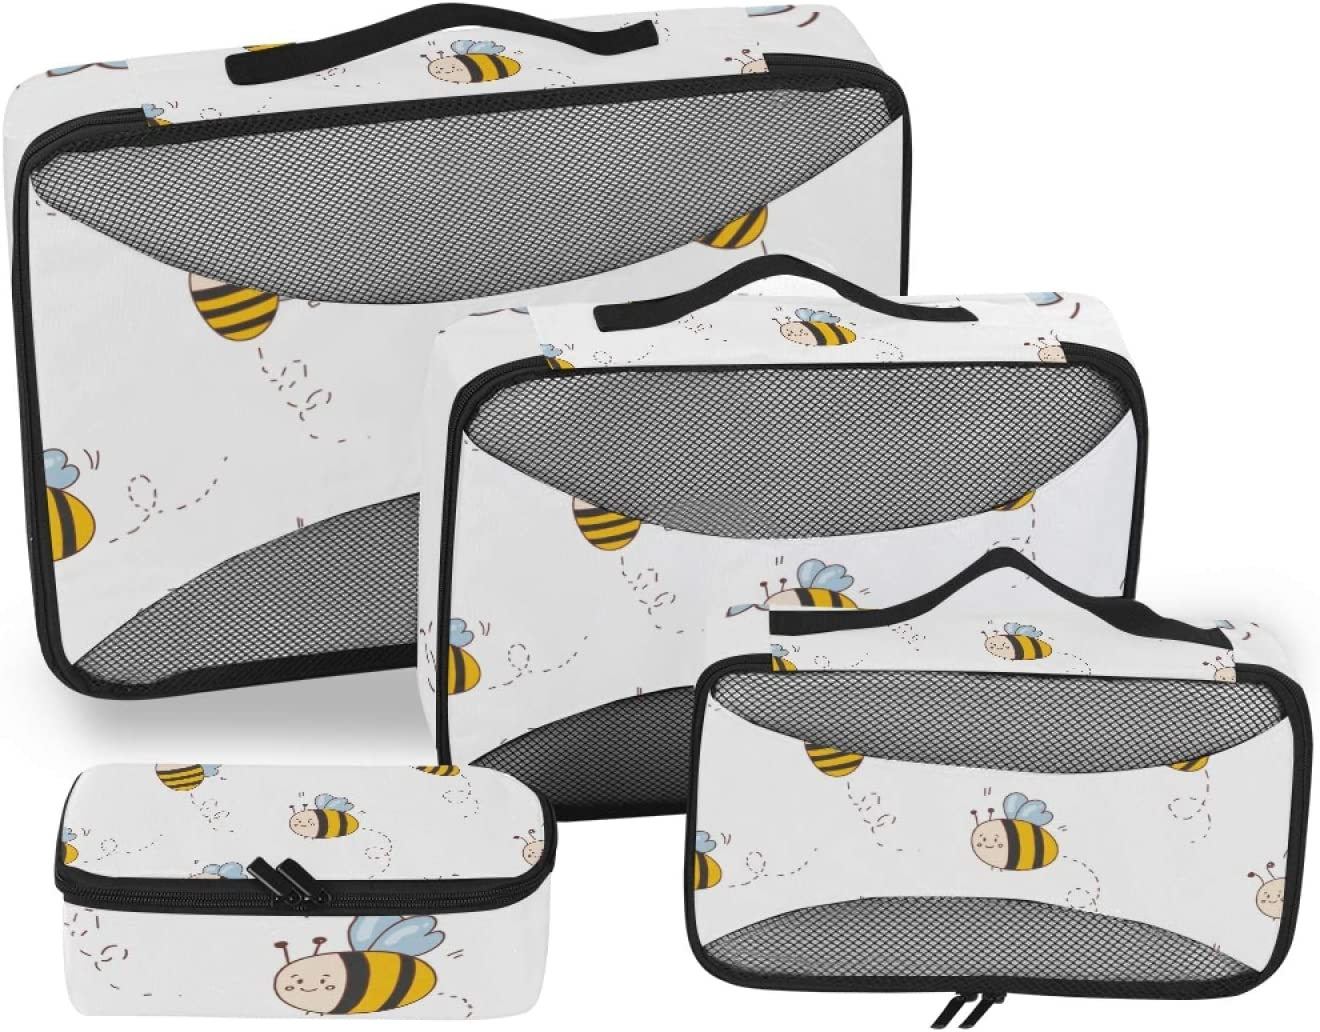 Honey Bees Packing Cubes 4-Pcs Selling Stor Ranking TOP11 Accessories Travel Organizer